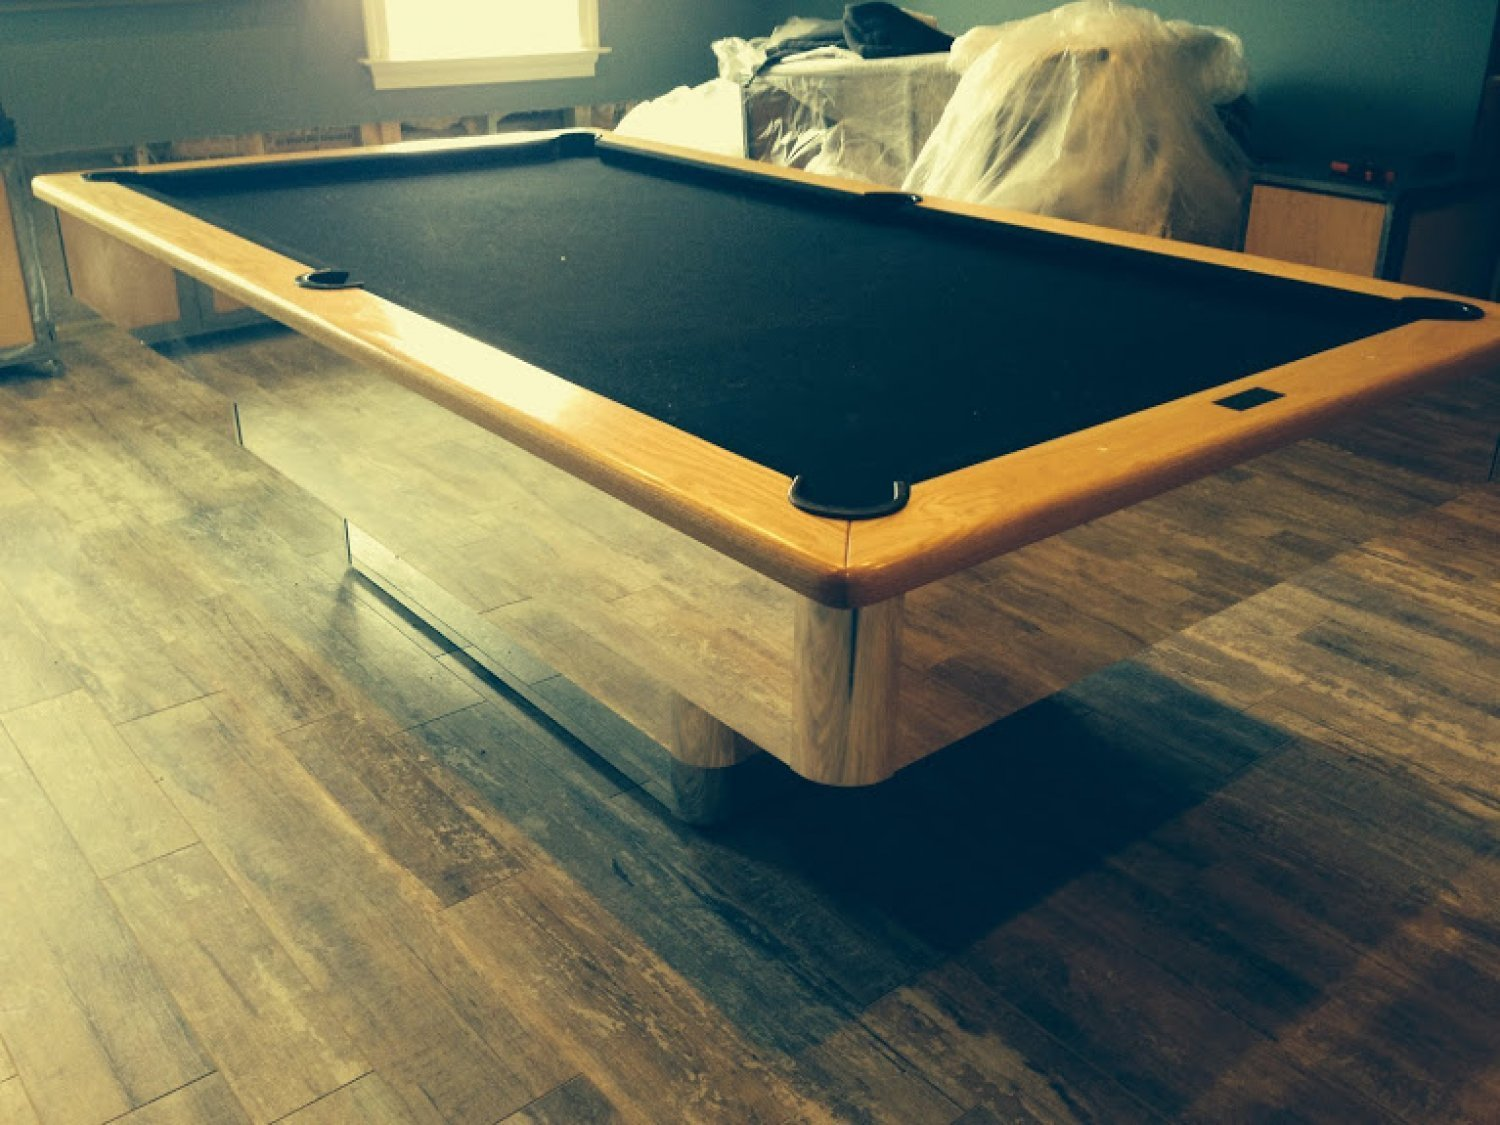 pool table disassembly and reassembly experienced